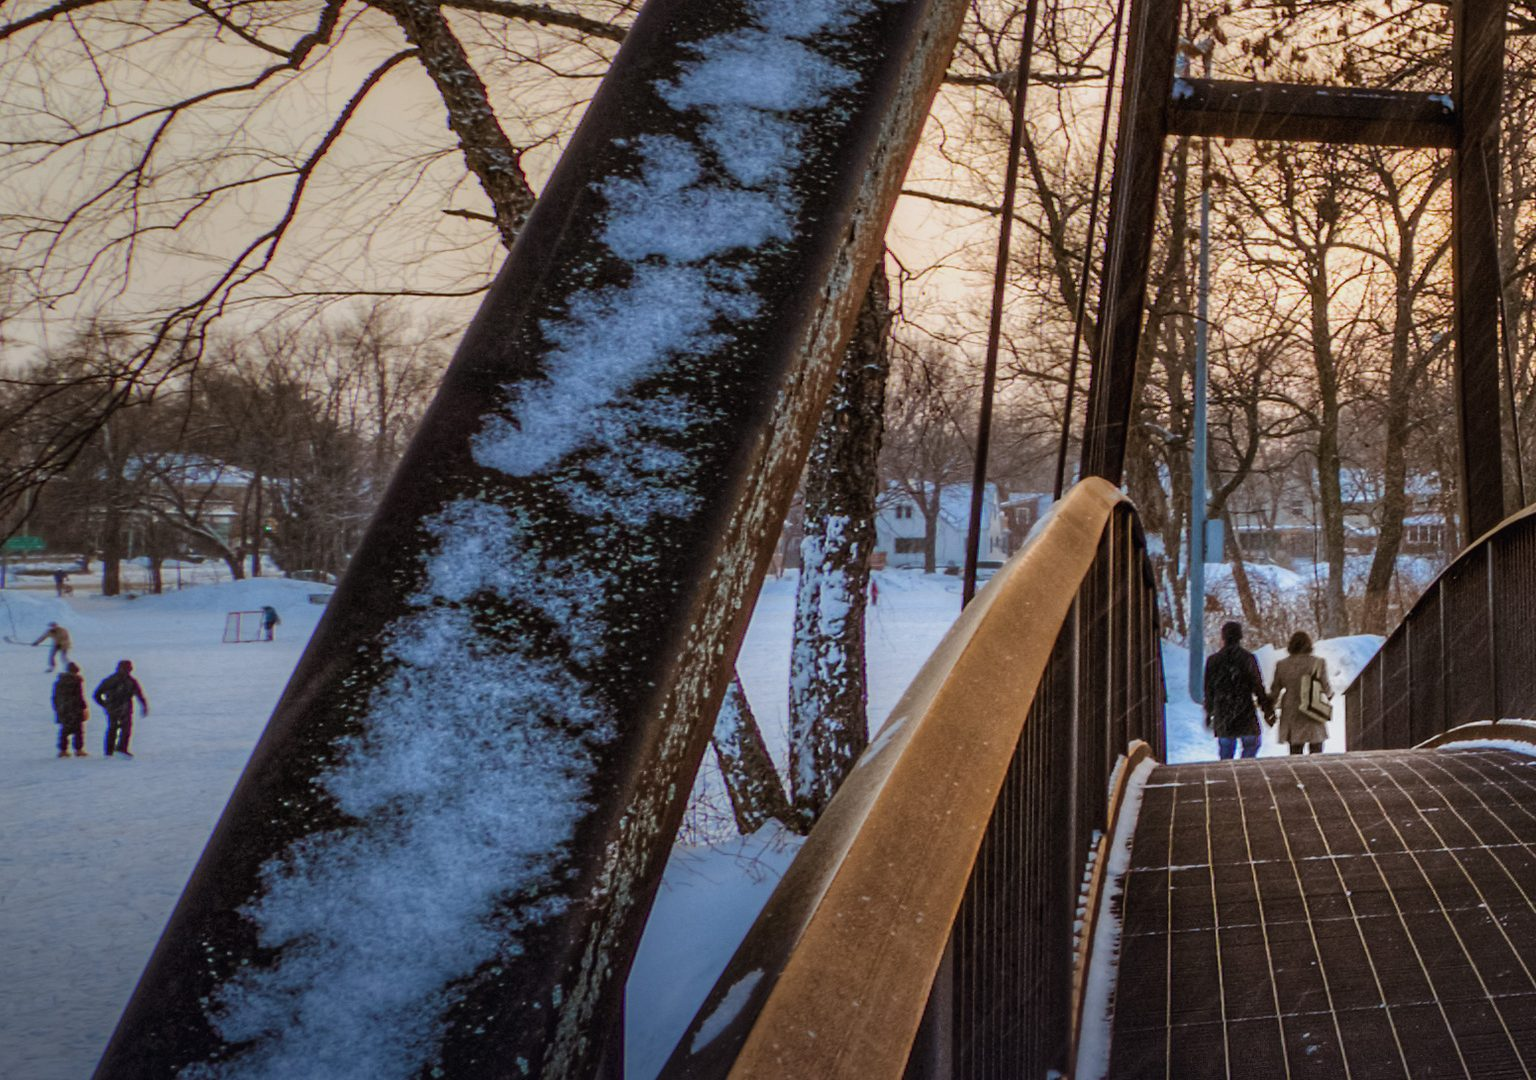 Long shot of two people from the other side of a metal bridge in a snow-covered park at dusk